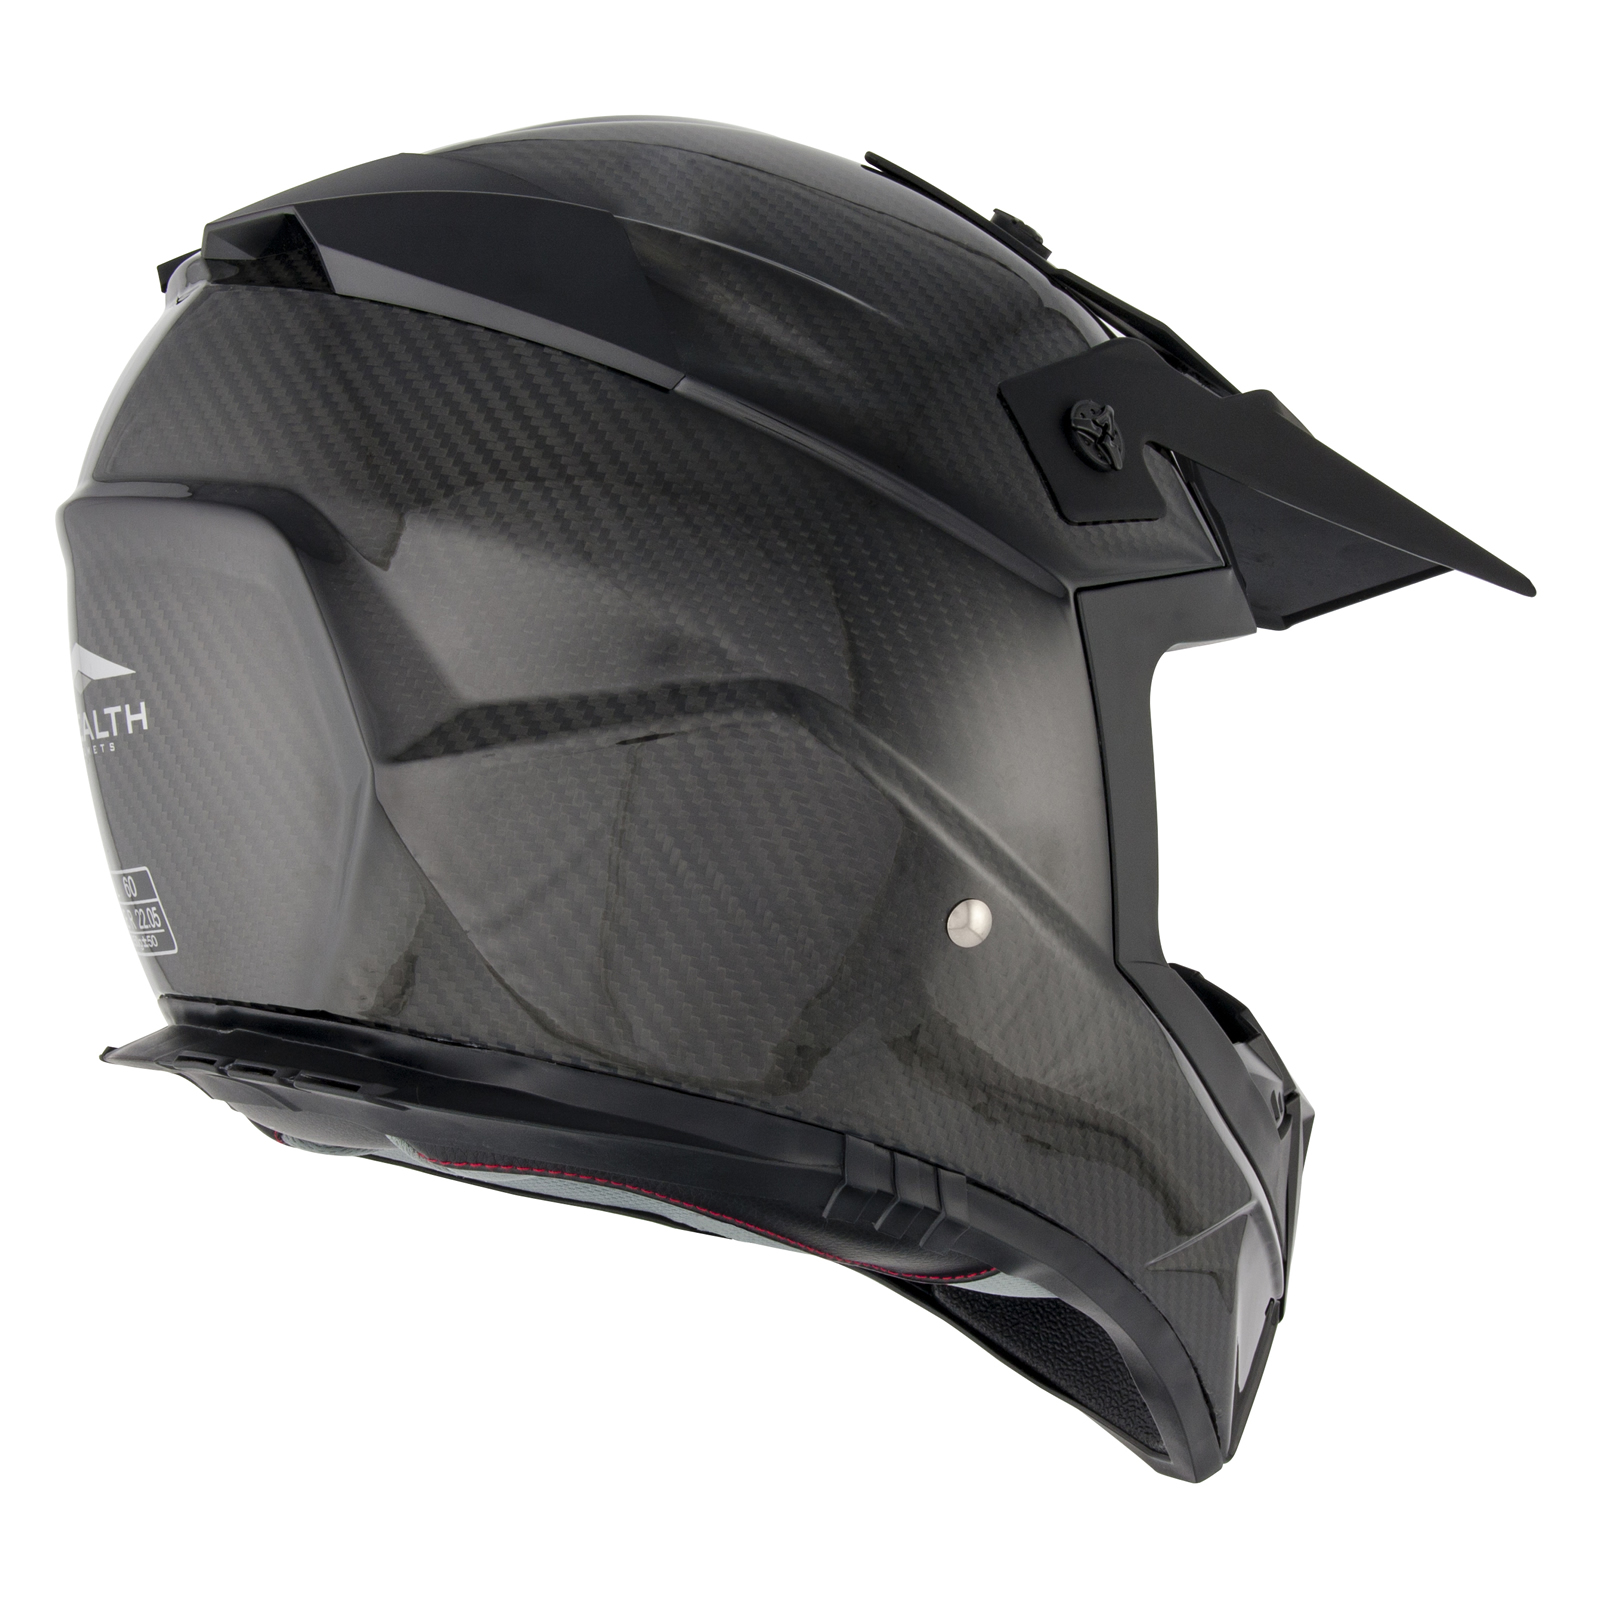 stealth hd210 kohlenfaser leicht mx motocross helm schwarz. Black Bedroom Furniture Sets. Home Design Ideas